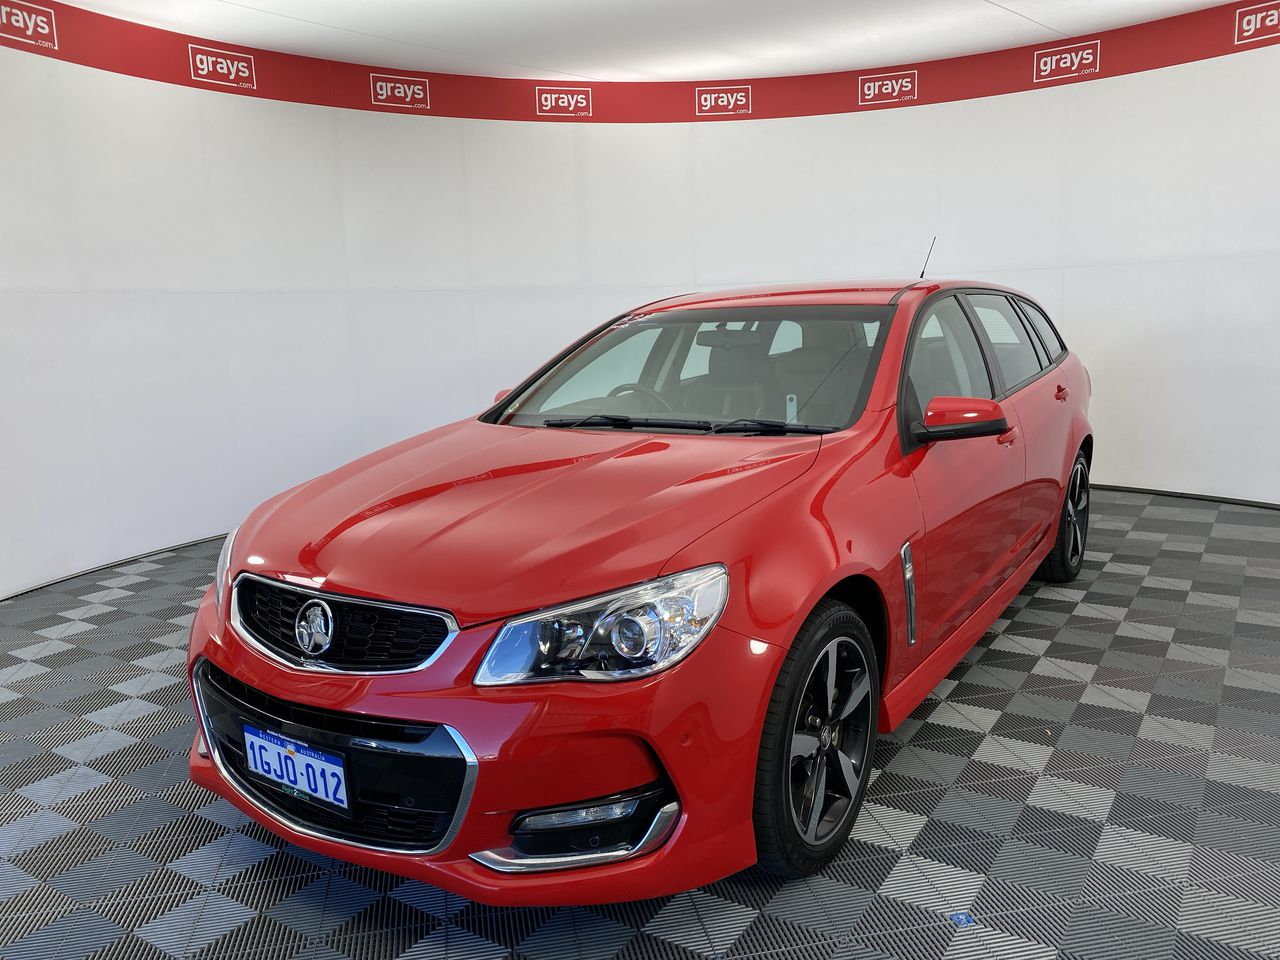 2017 Holden Commodore SV6 VF Automatic Wagon